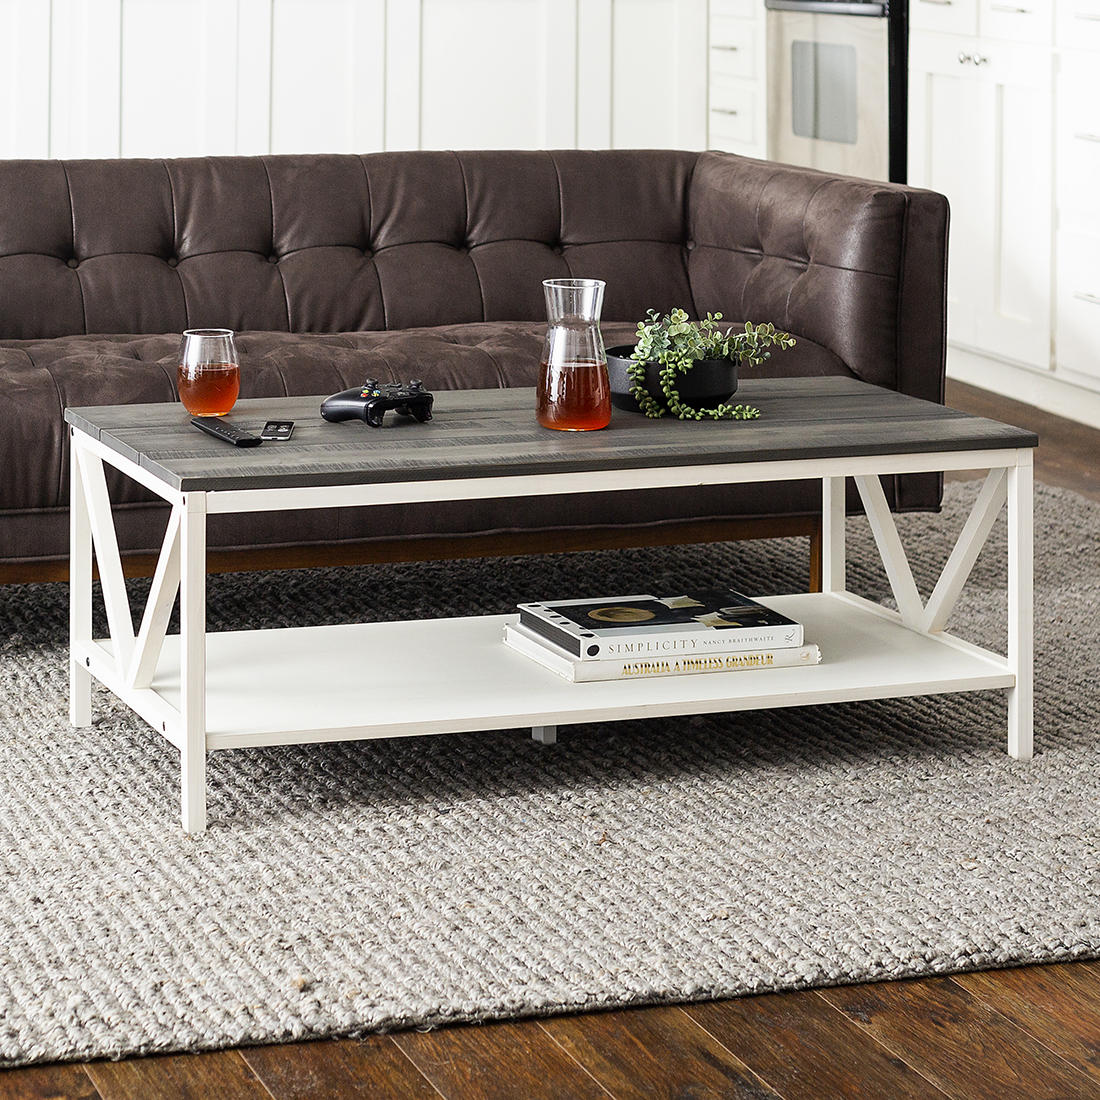 48 Distressed Farmhouse Solid Wood Coffee Table Gray And White Wash